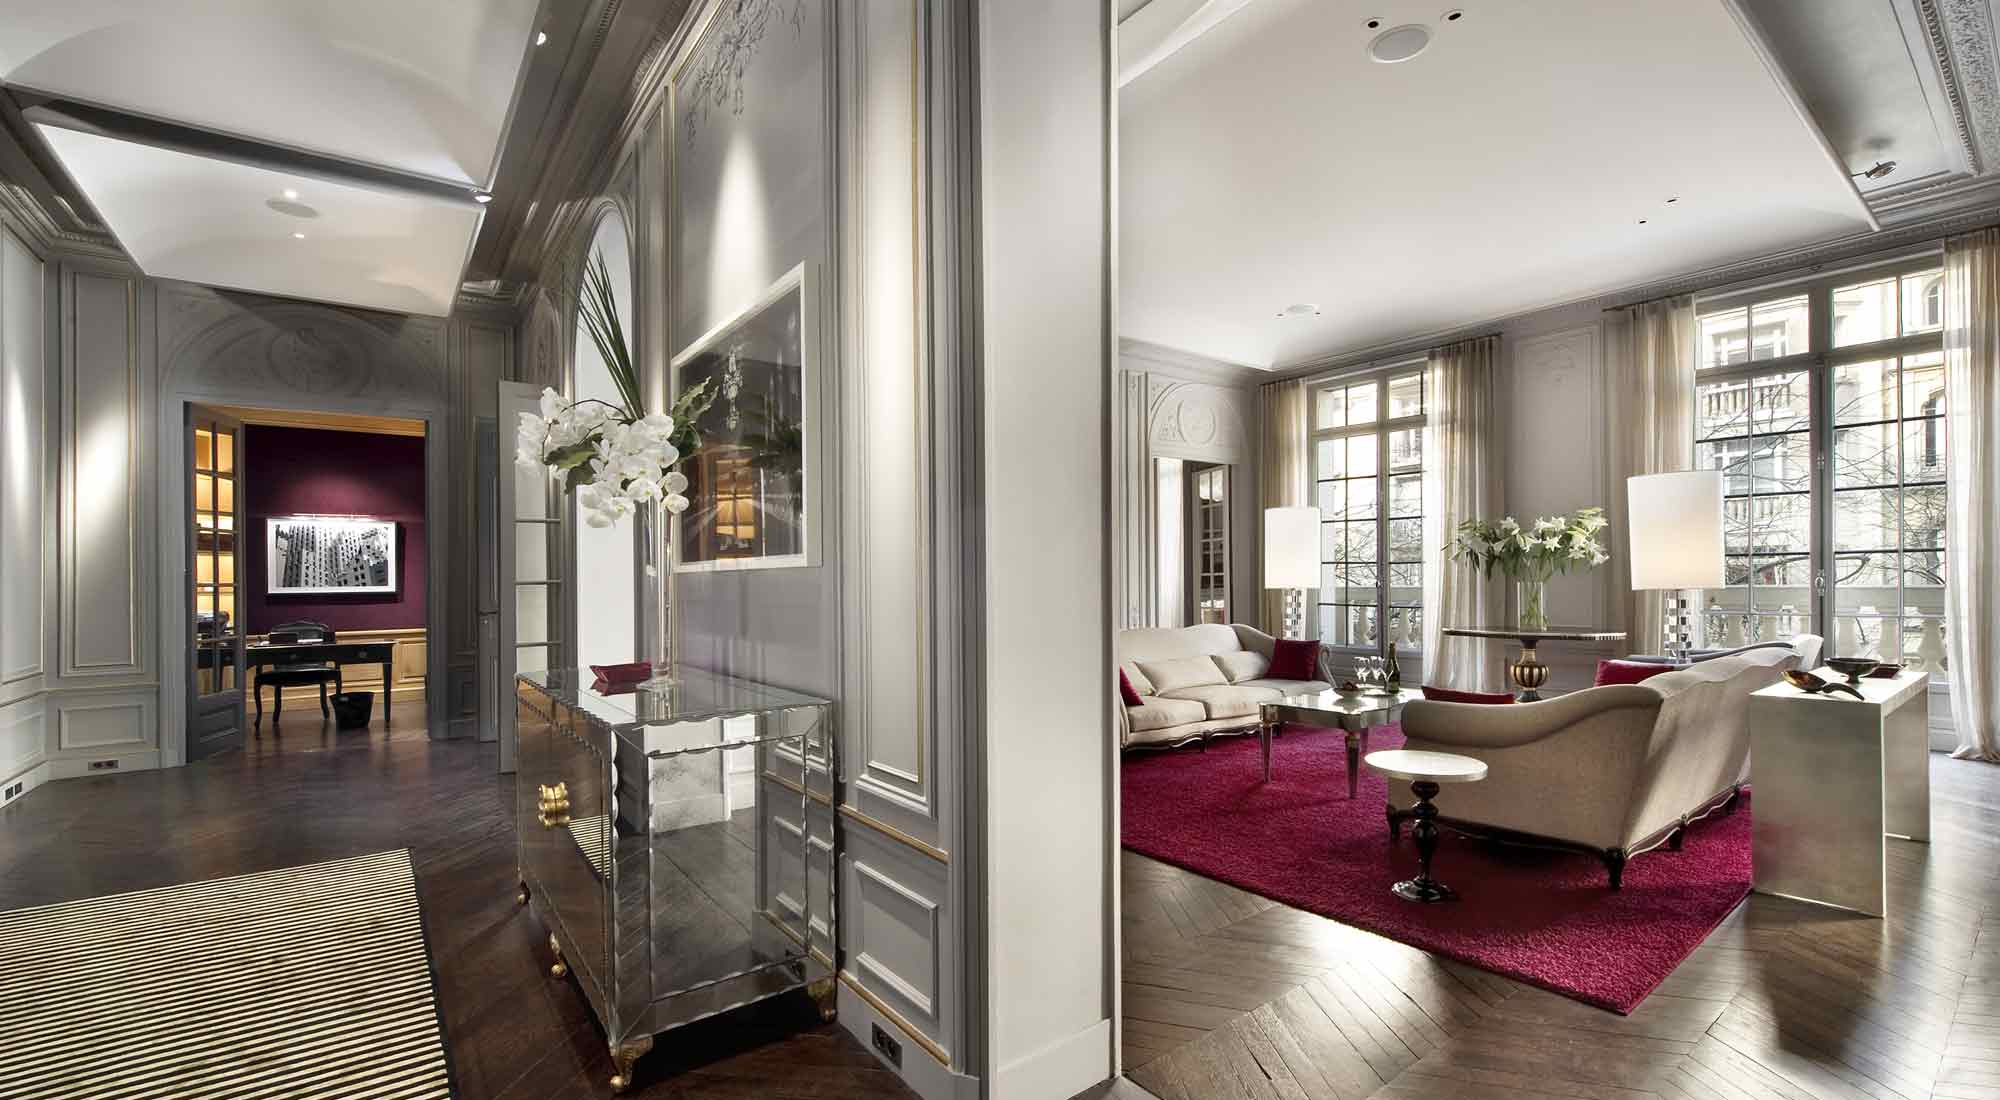 Paris Luxury Apartment For Rent In The 16th